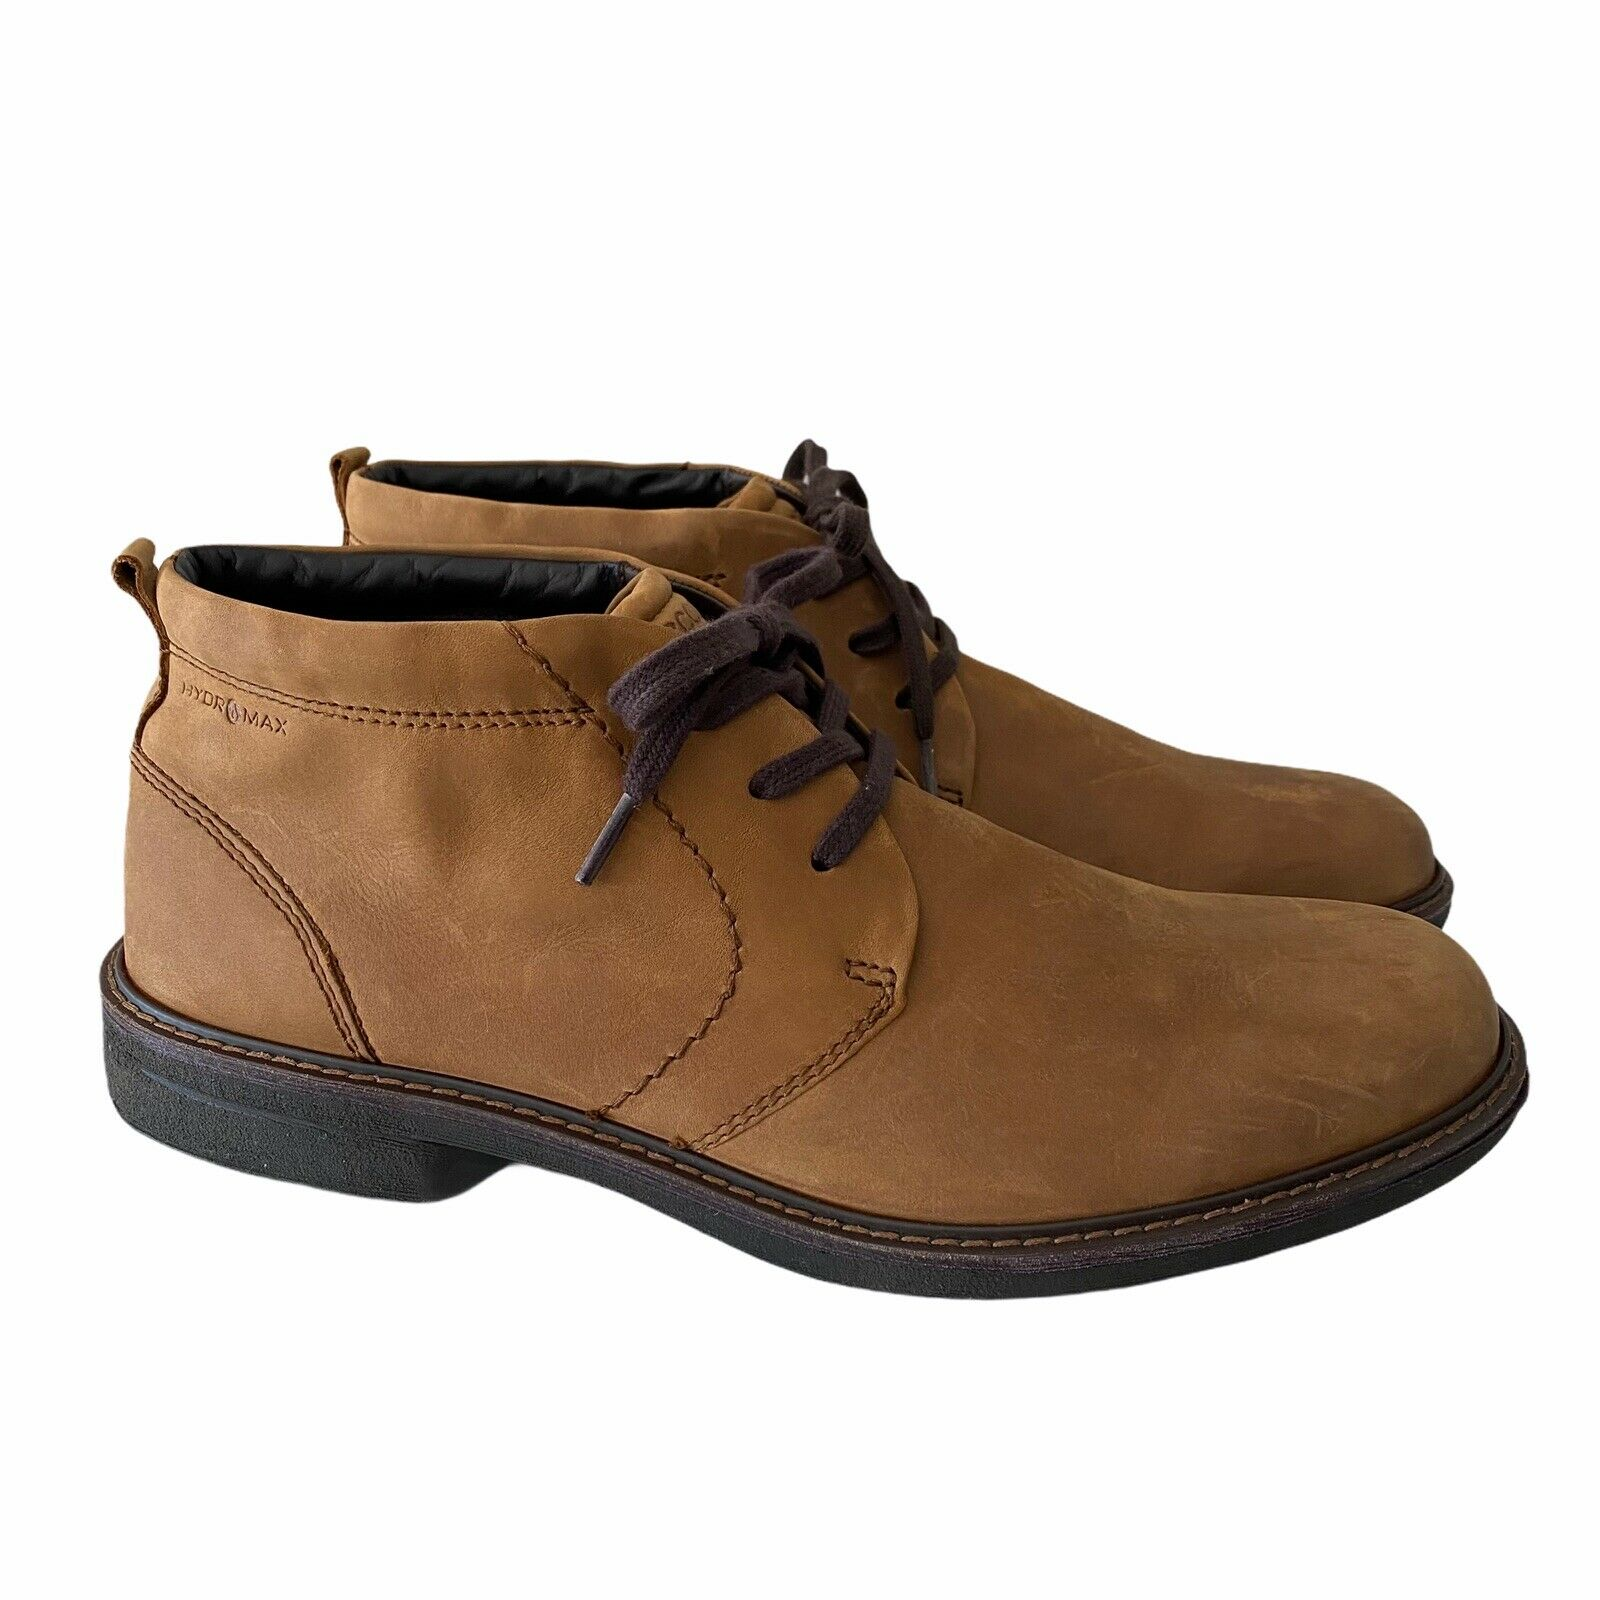 ECCO Turn Hydromax Water-Resistant Chukka Boots Nubuck Leather Mens Size 47 / 13